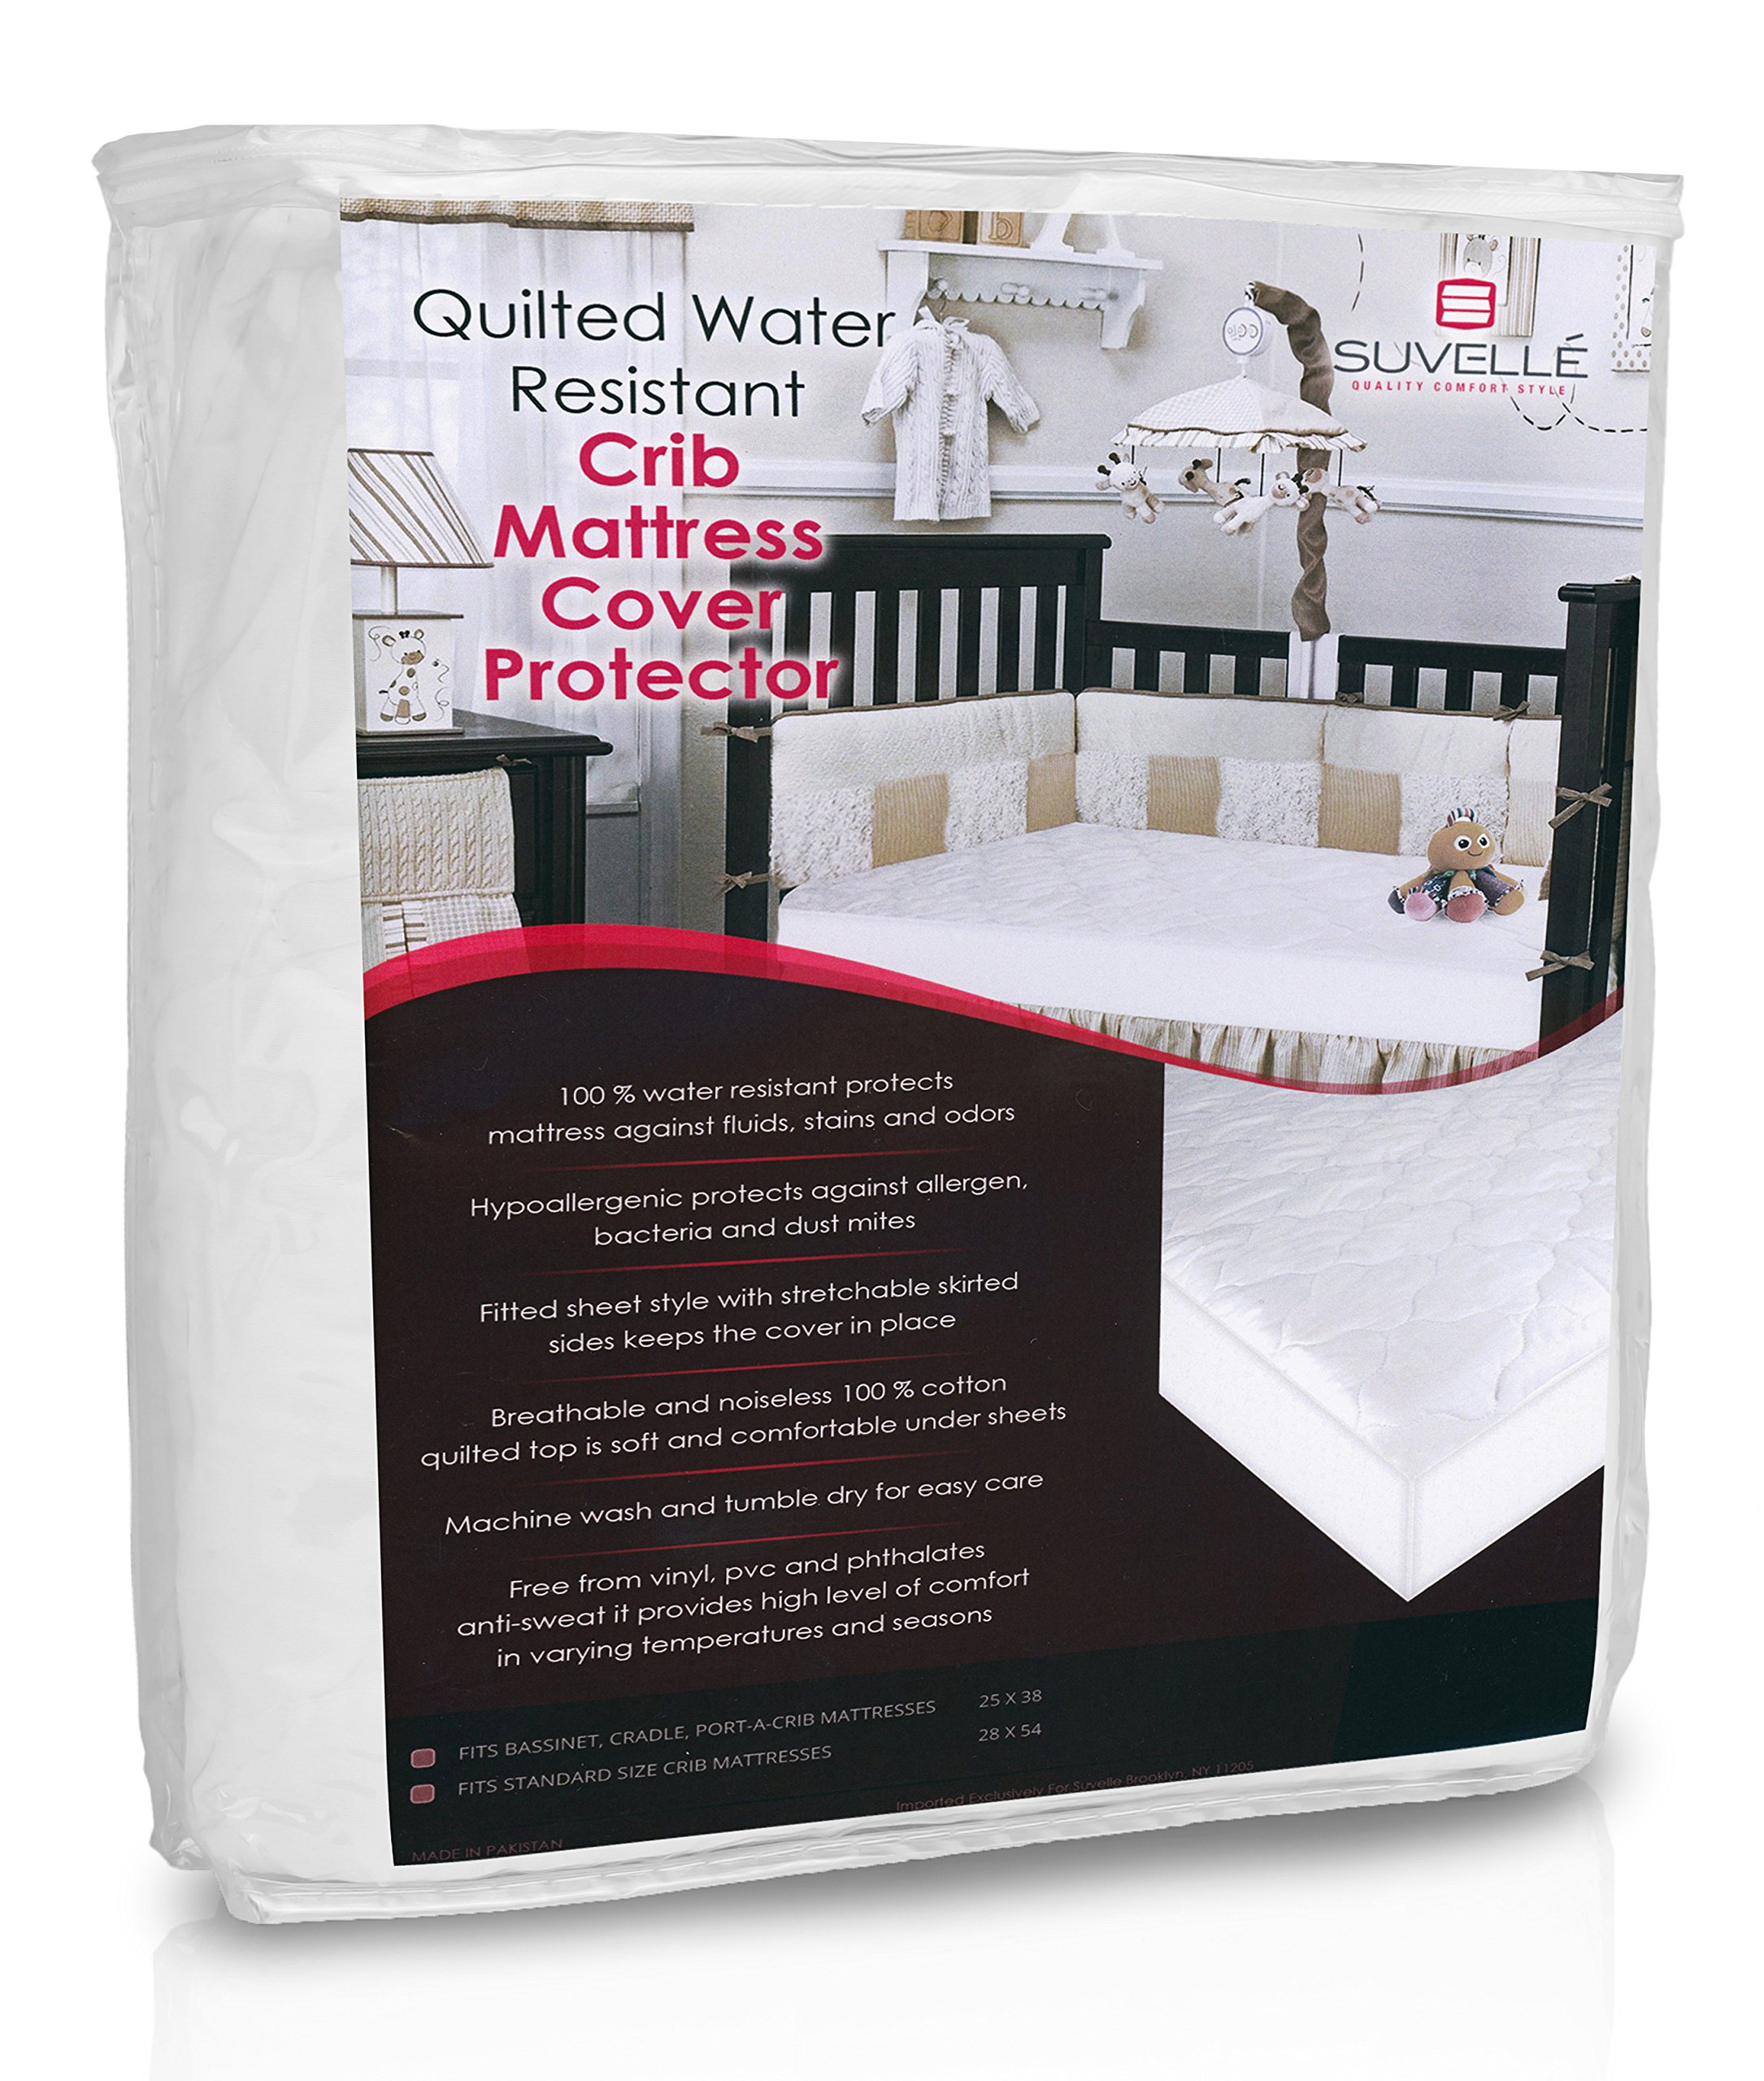 Suvelle Hypoallergenic Water Resistant Mattress Pad Cover, Fitted Quilted Baby Crib and Toddler Protector, Comfy, Soft and Breathable Cotton, Size 25 X 38